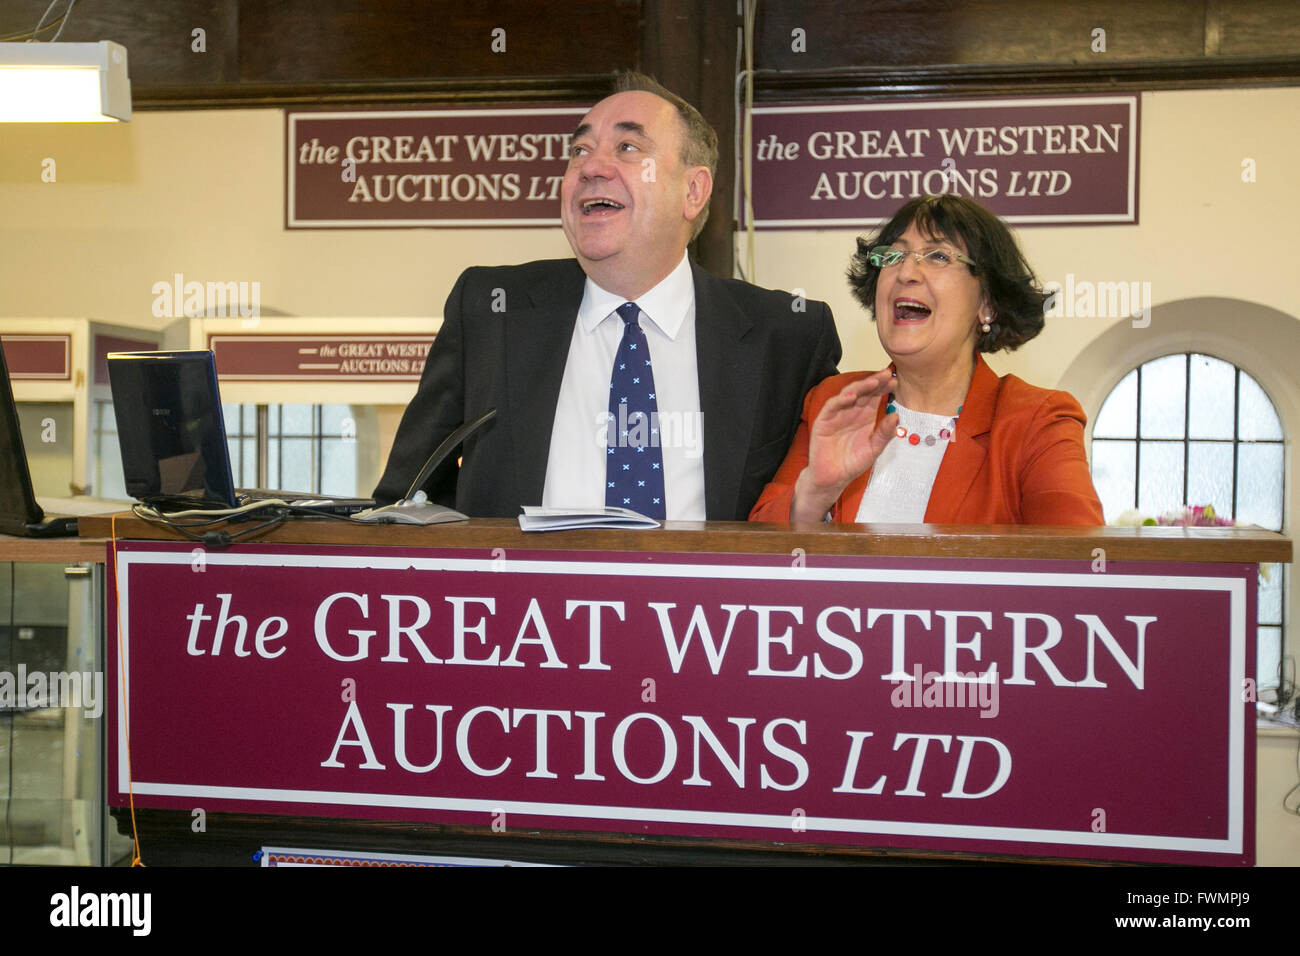 SNP Alex Salmond and Anita Manning at The Great Western Auctions Ltd - Stock Image